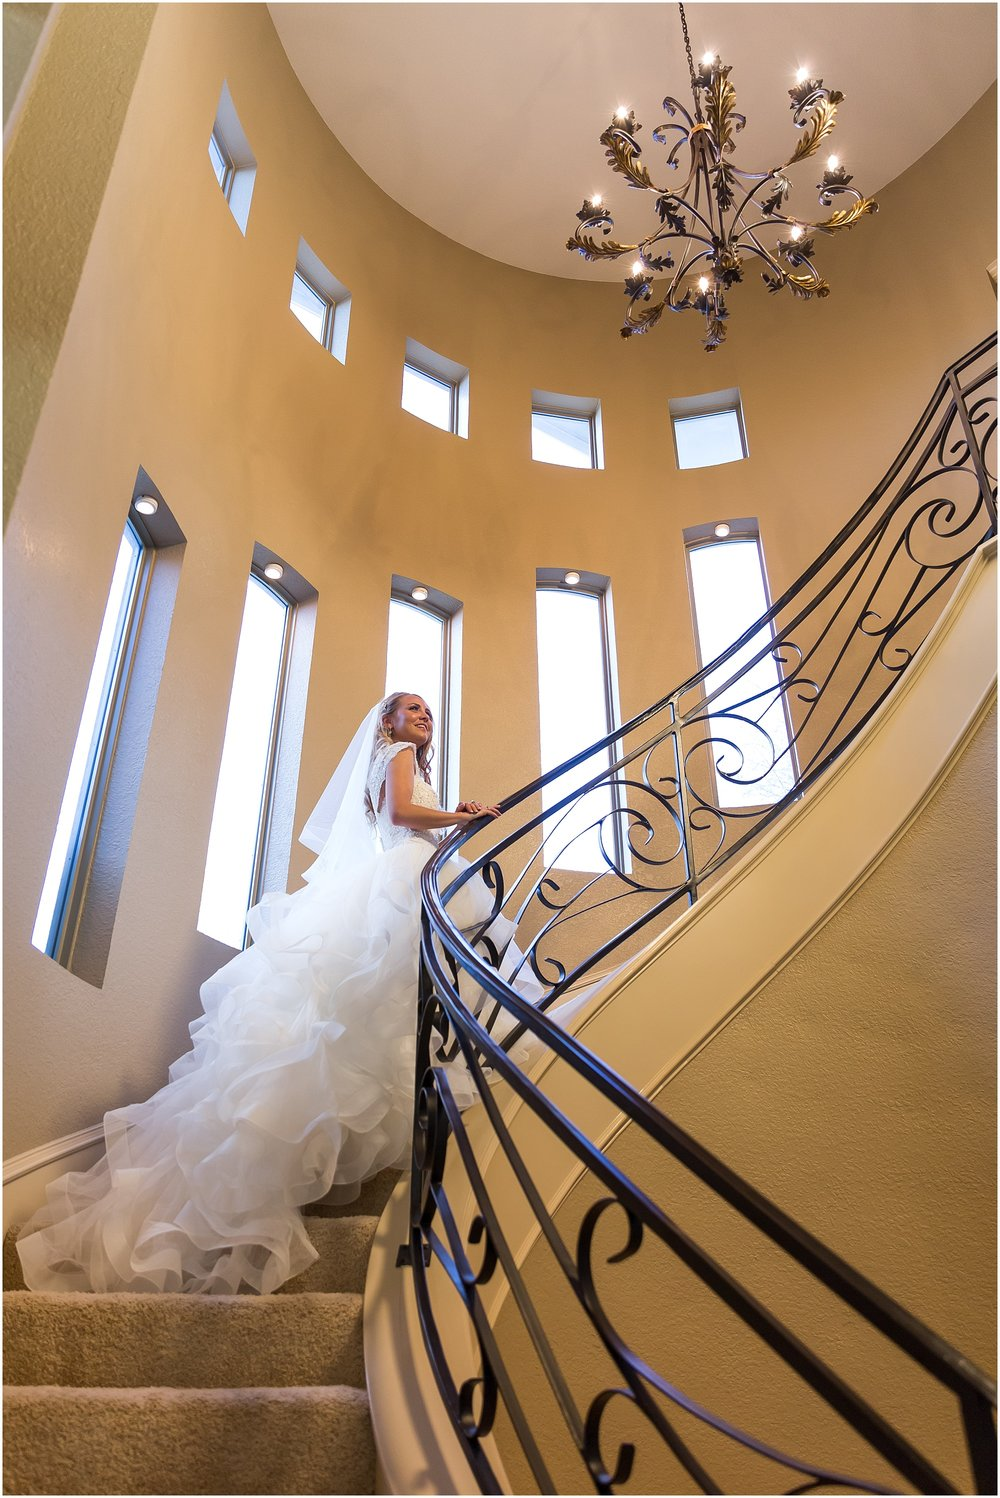 Bride poses on winding staircase - Jason & Melaina Photography - www.jasonandmelaina.com